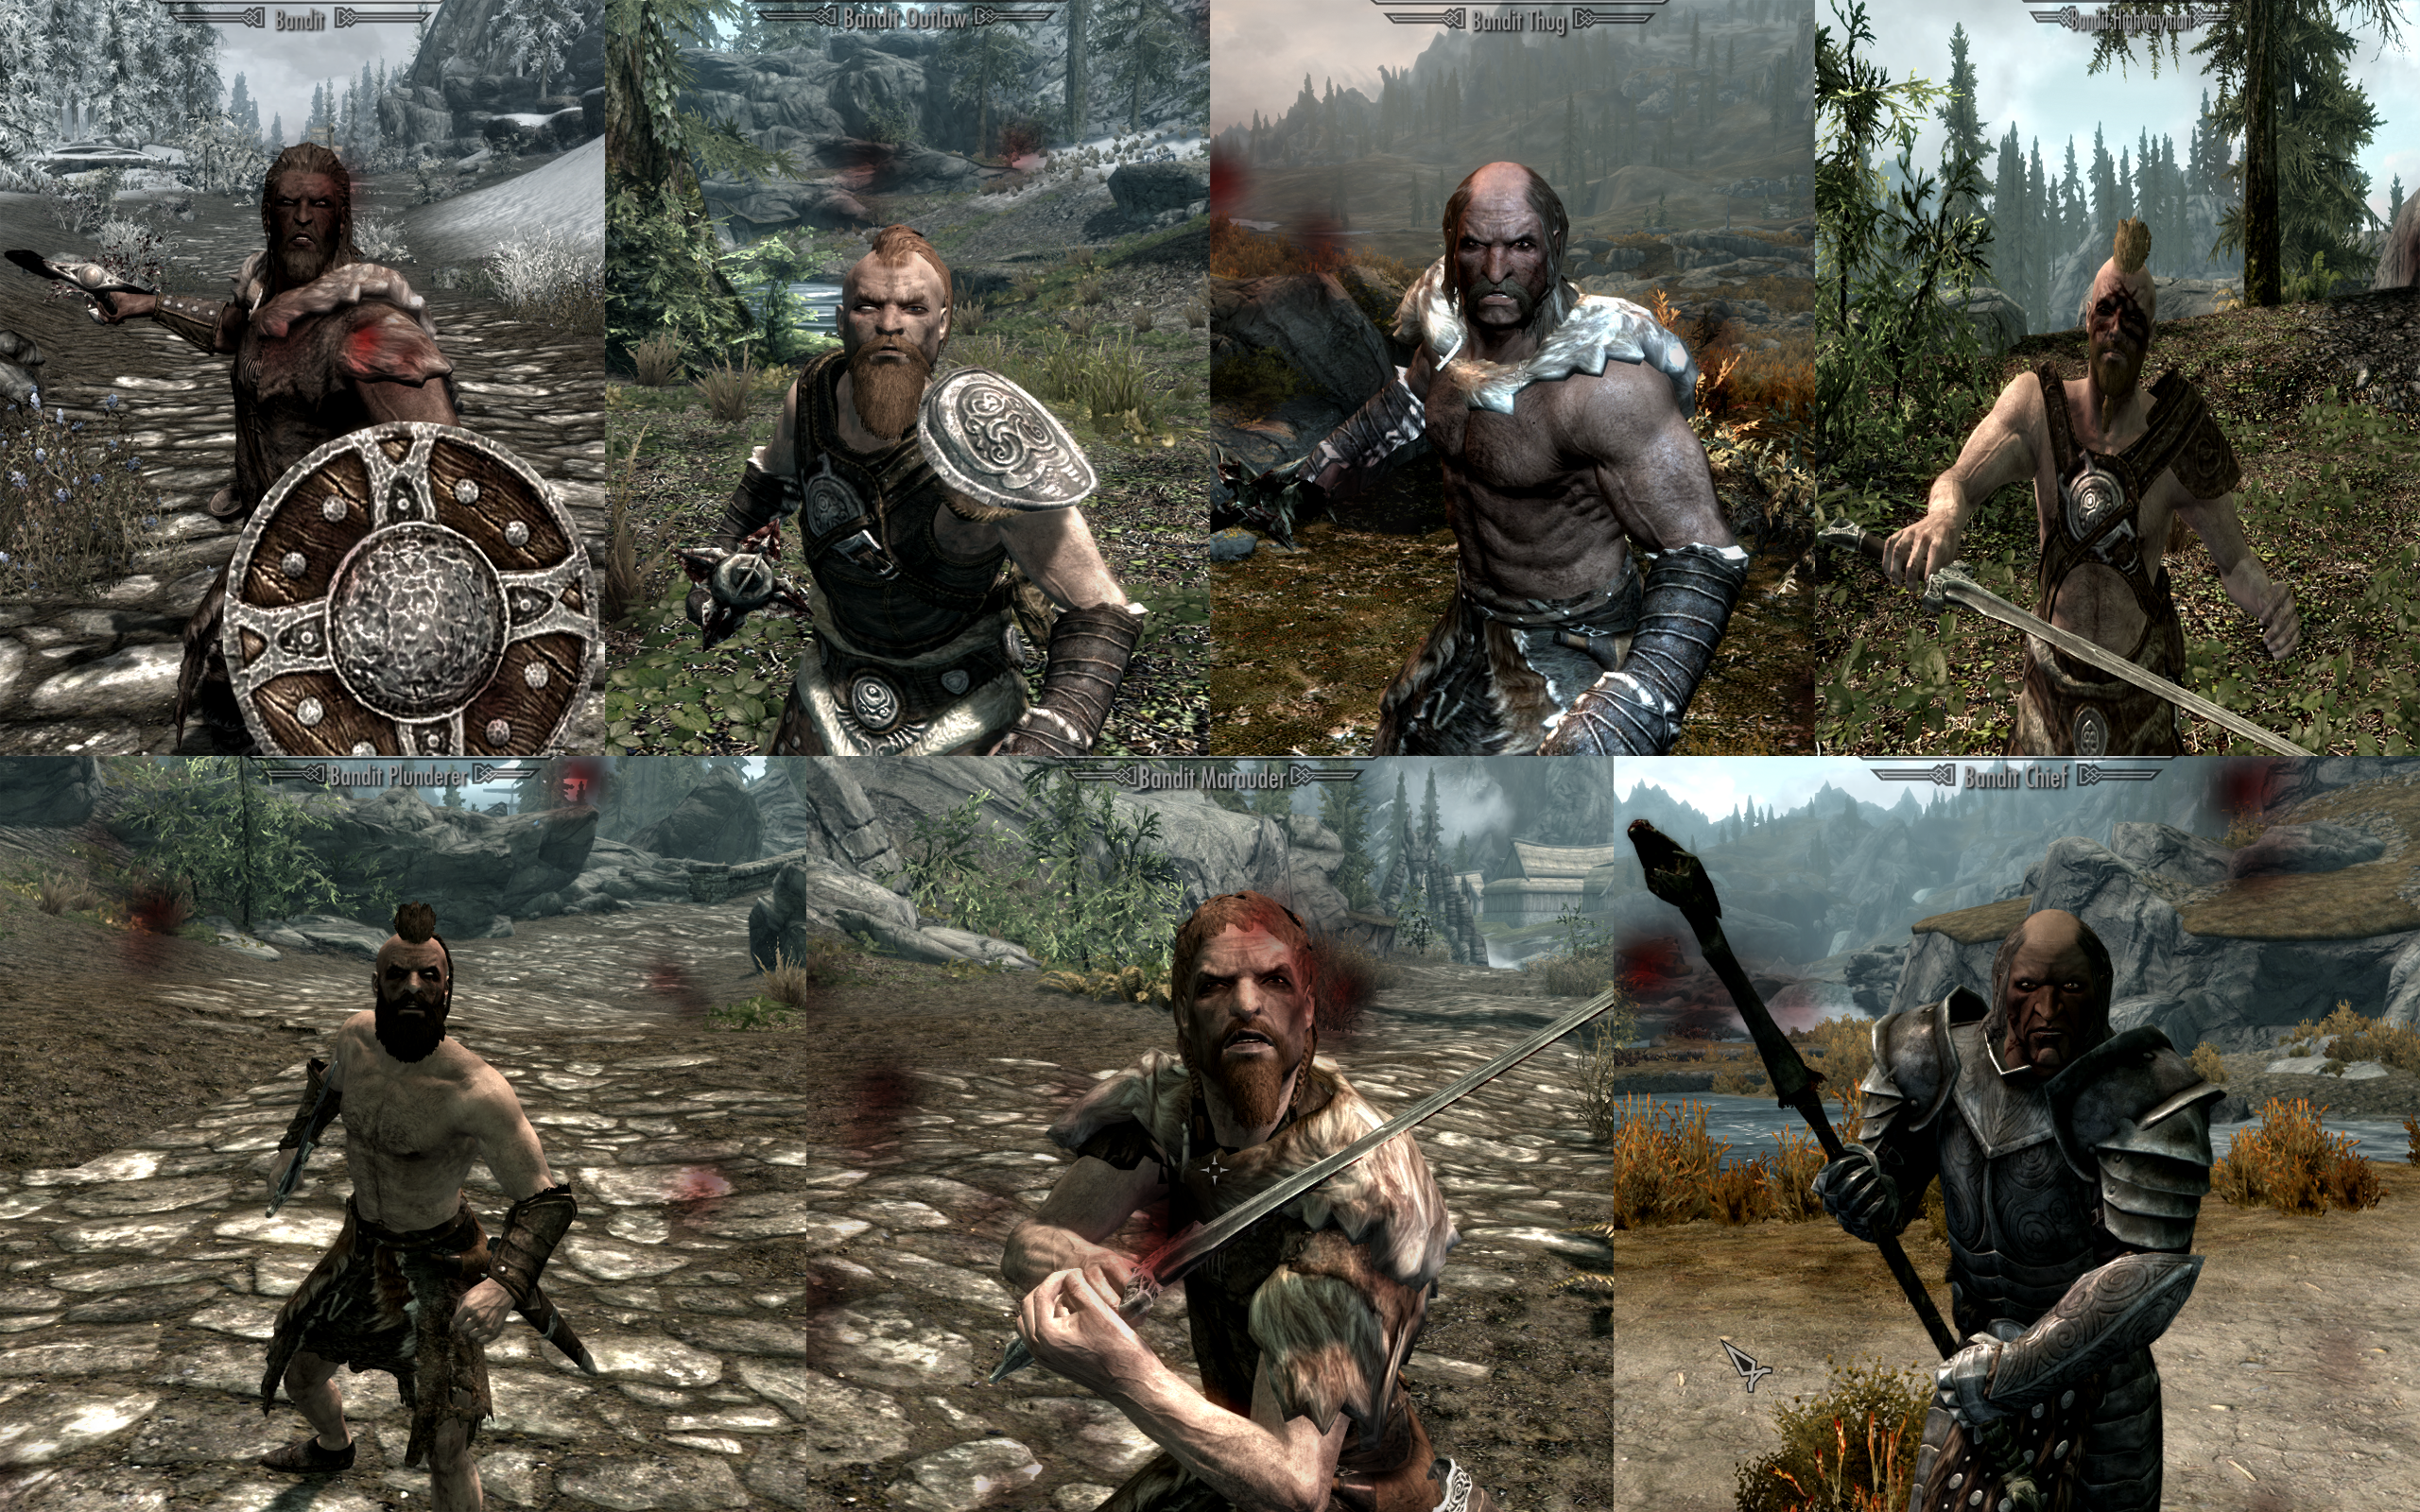 http://vignette2.wikia.nocookie.net/elderscrolls/images/2/24/All_Type_of_Bandits_in_Order.png/revision/latest?cb=20111201231349